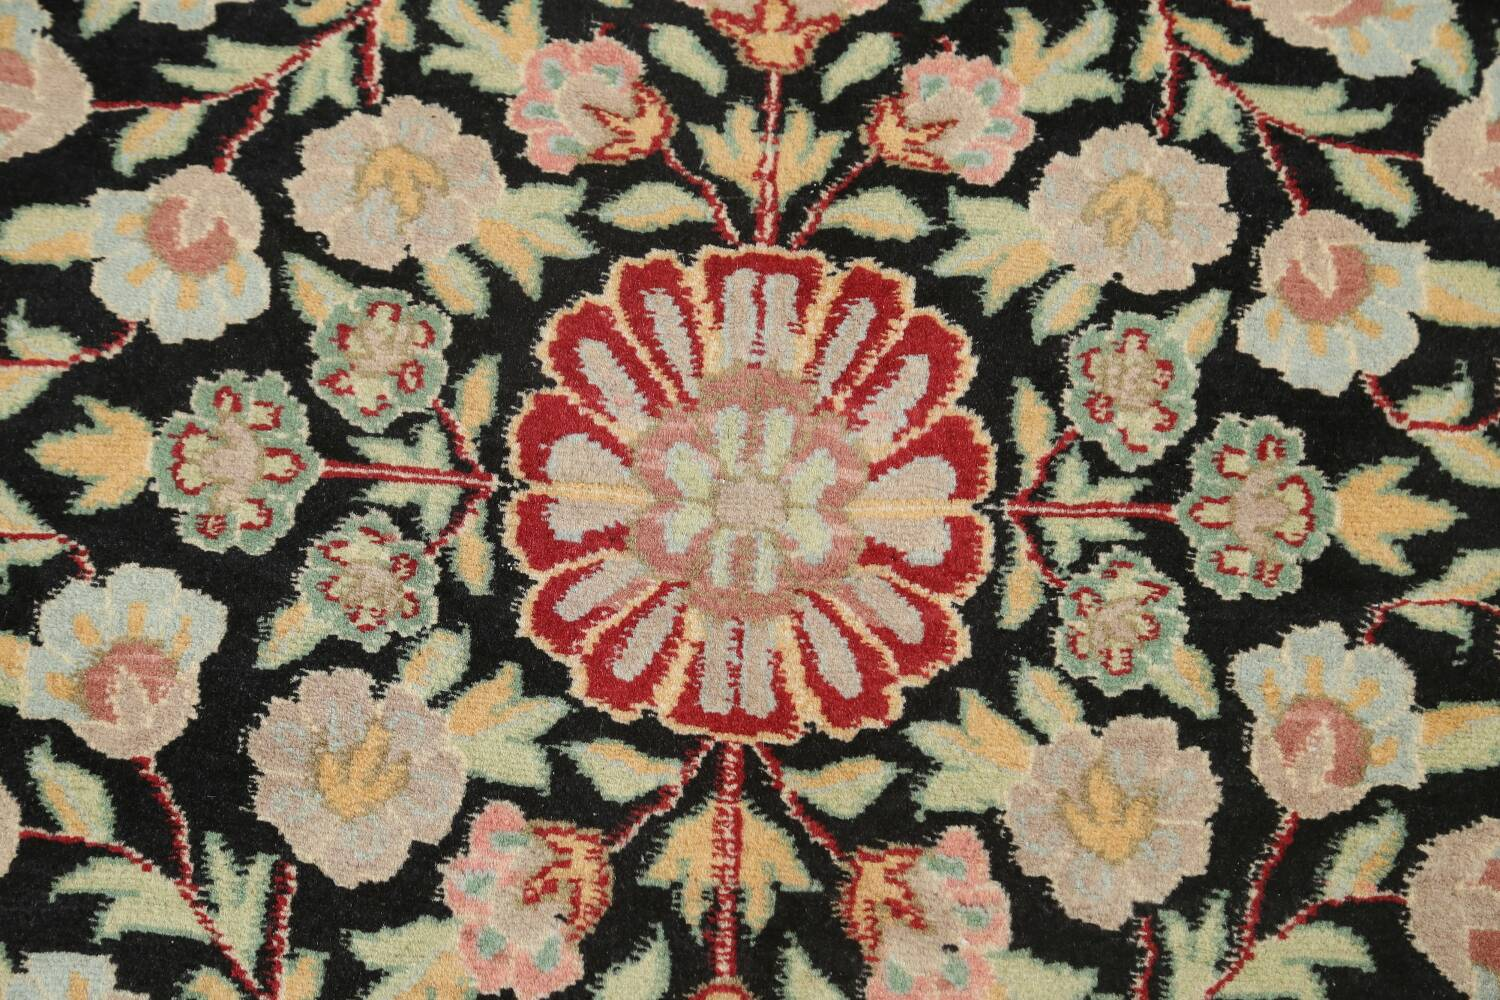 Vegetable Dye Aubusson Hand-Knotted Area Rug 4x6 image 8